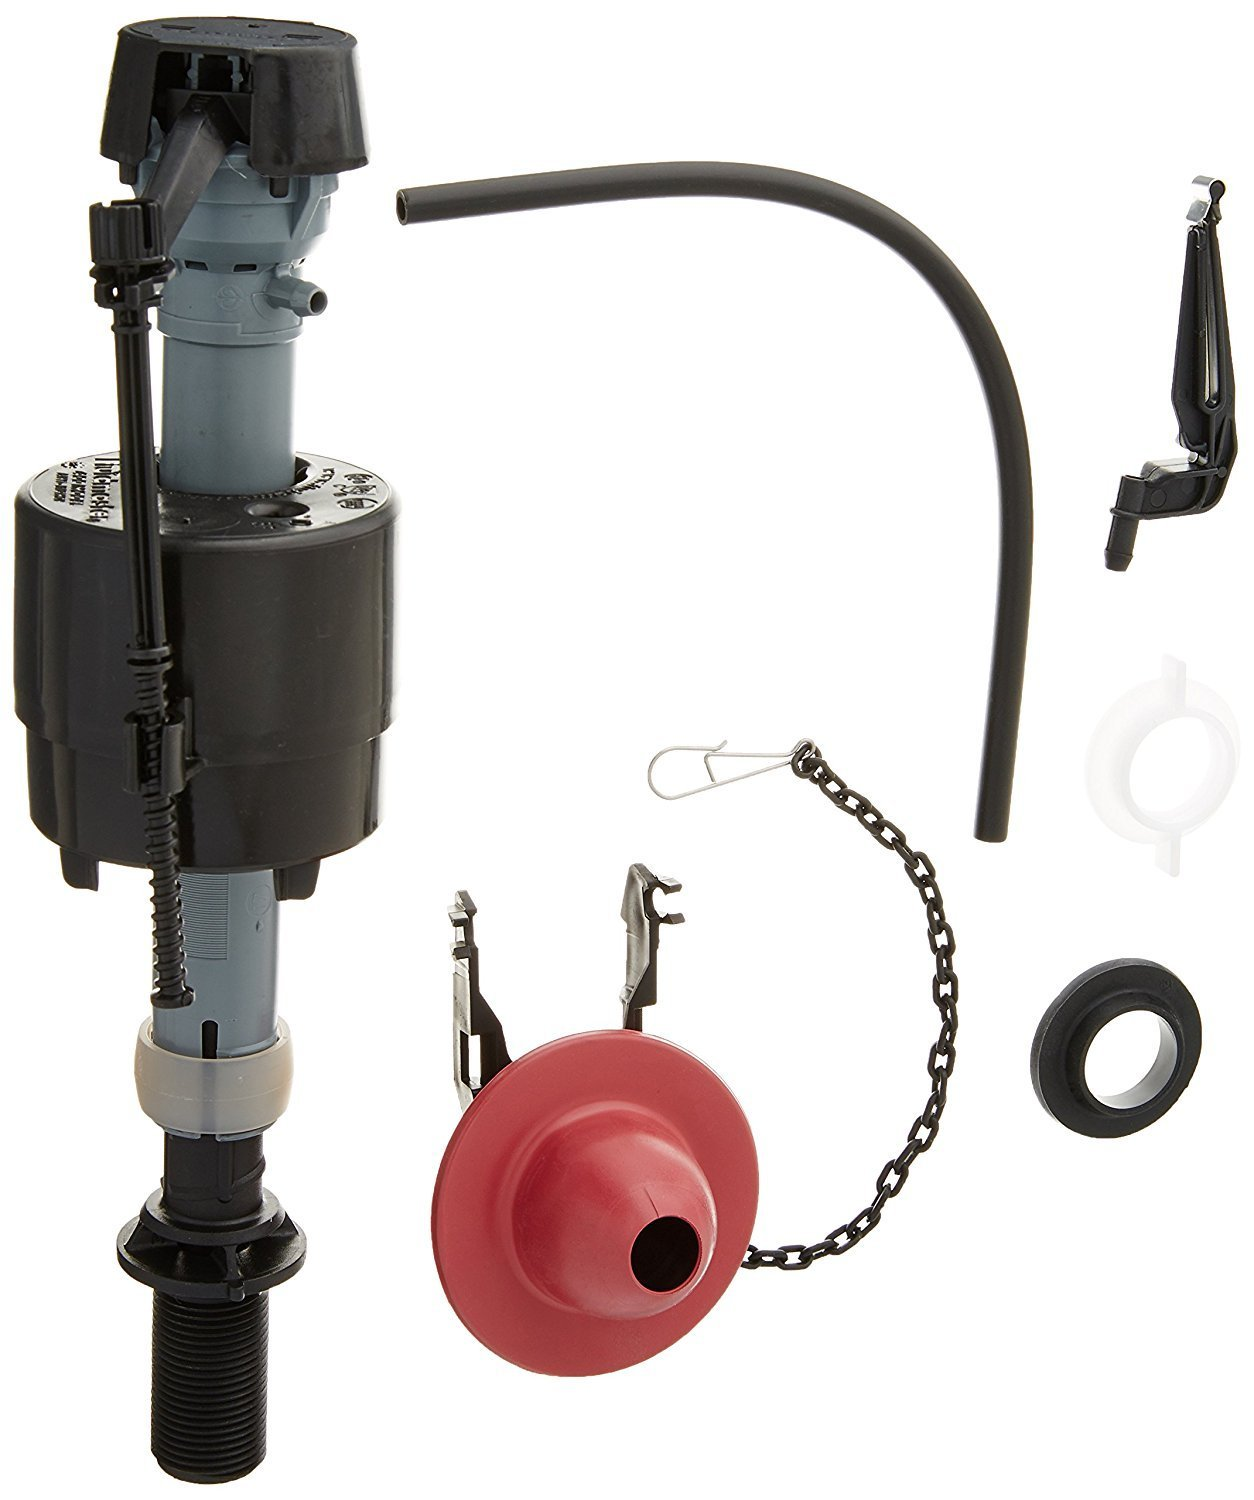 FLUIDMASTER 400C FILL VALVE AND 2 INCH FLAPPER TOILET REPAIR KIT